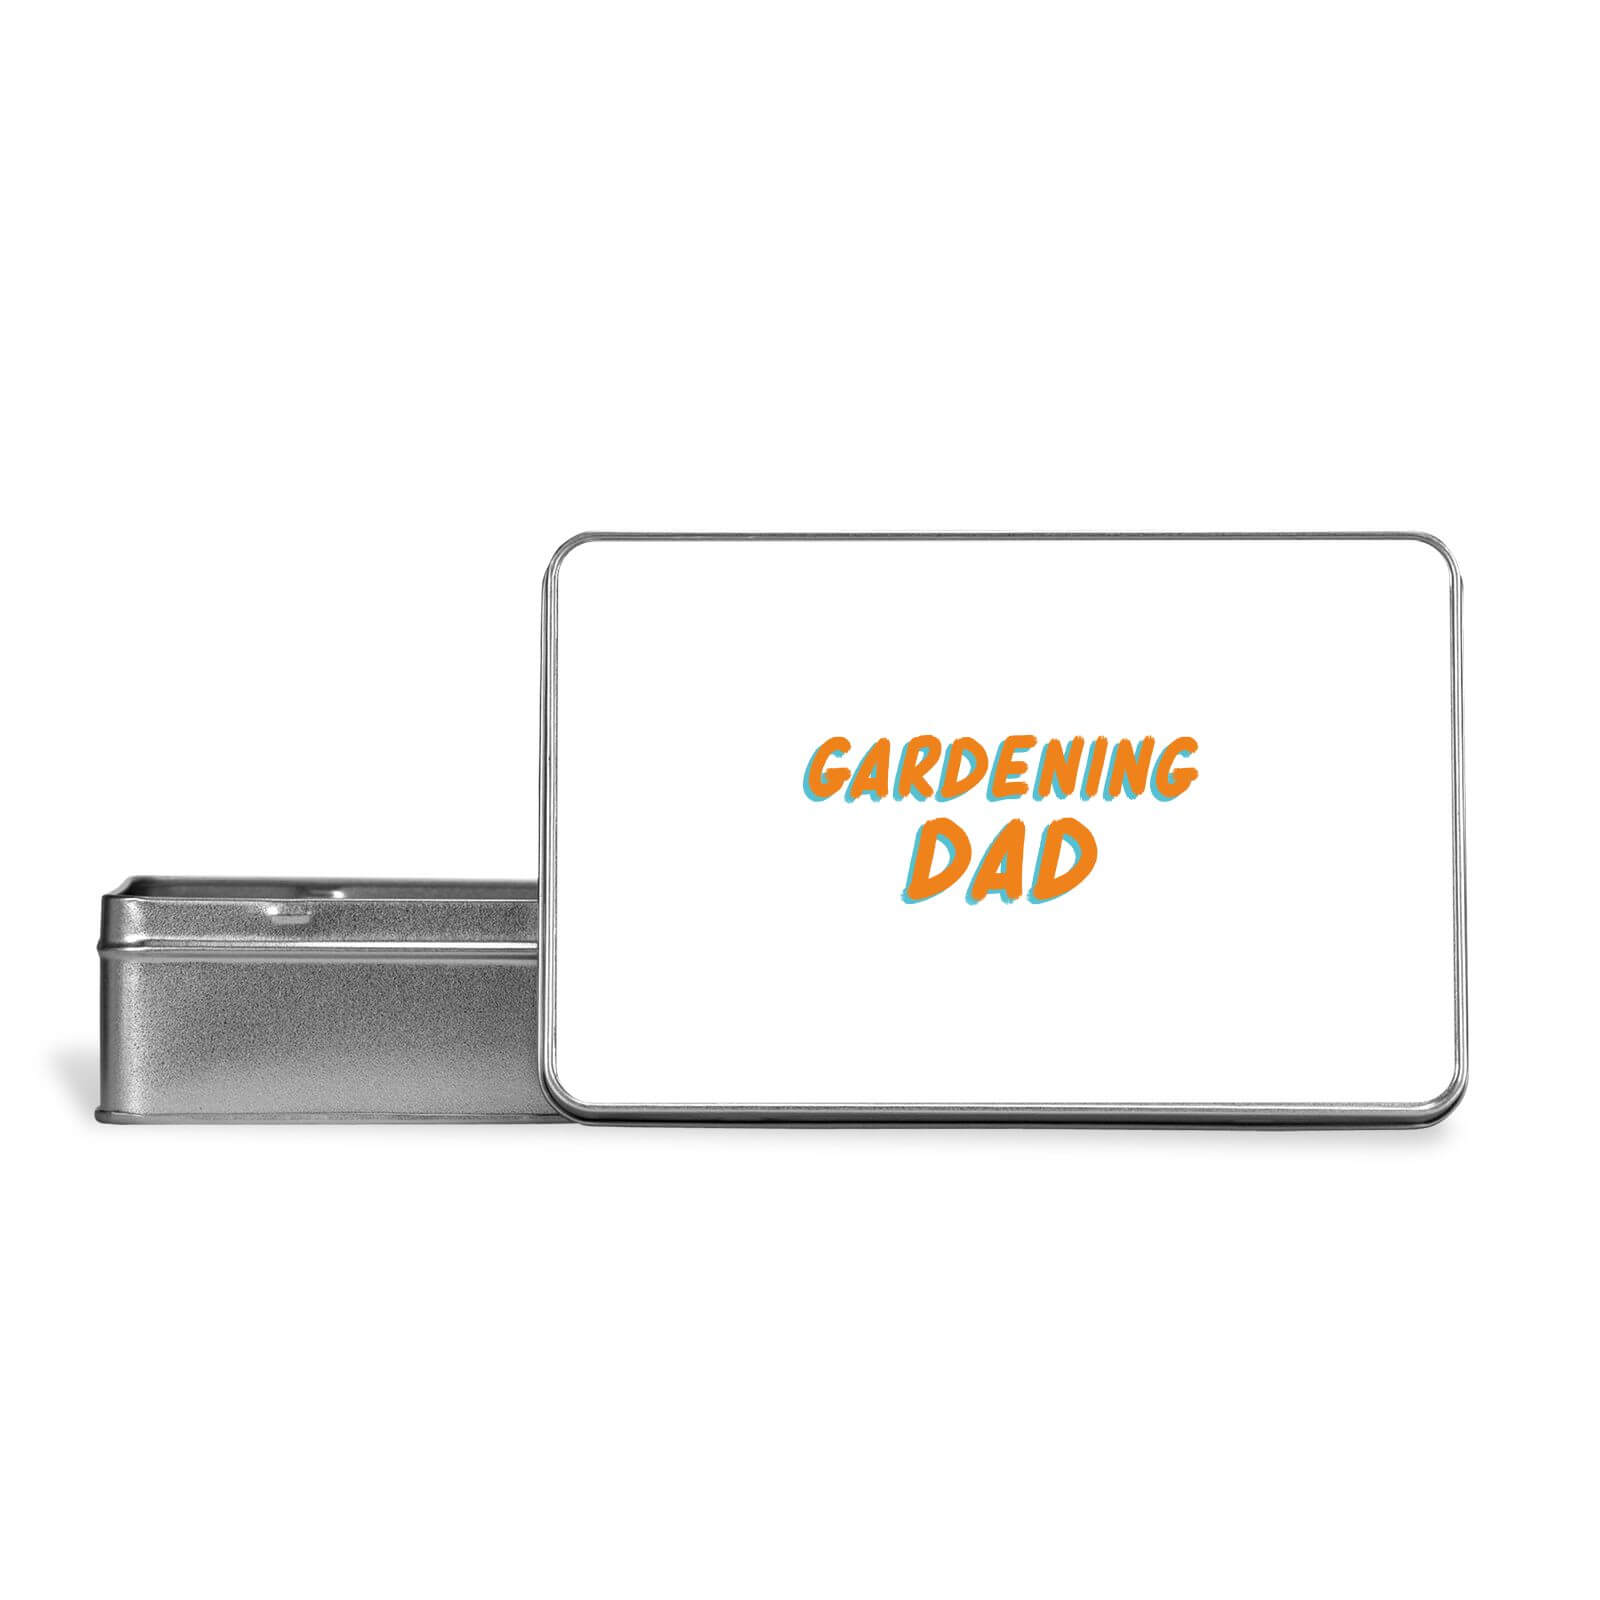 Gardening Dad Metal Storage Tin